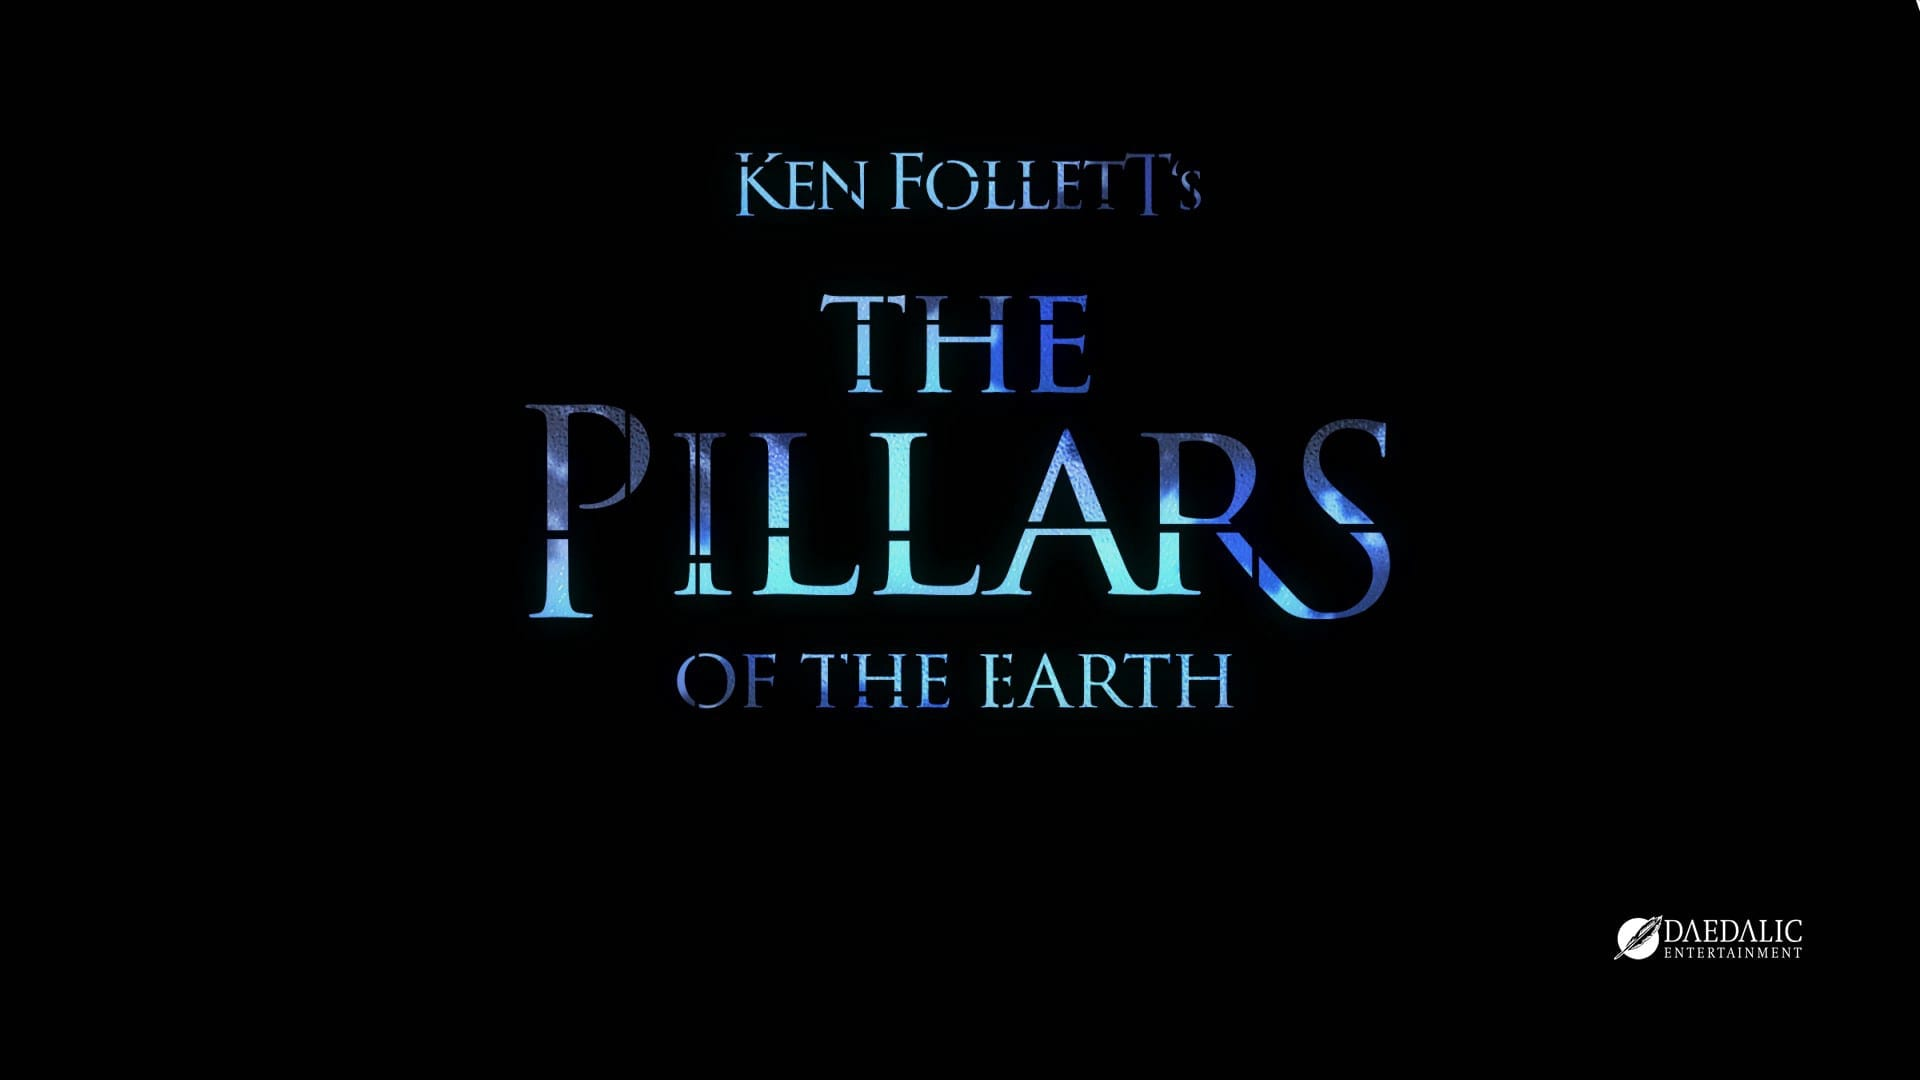 Ken-Folletts-The-Pillars-of-the-Earth